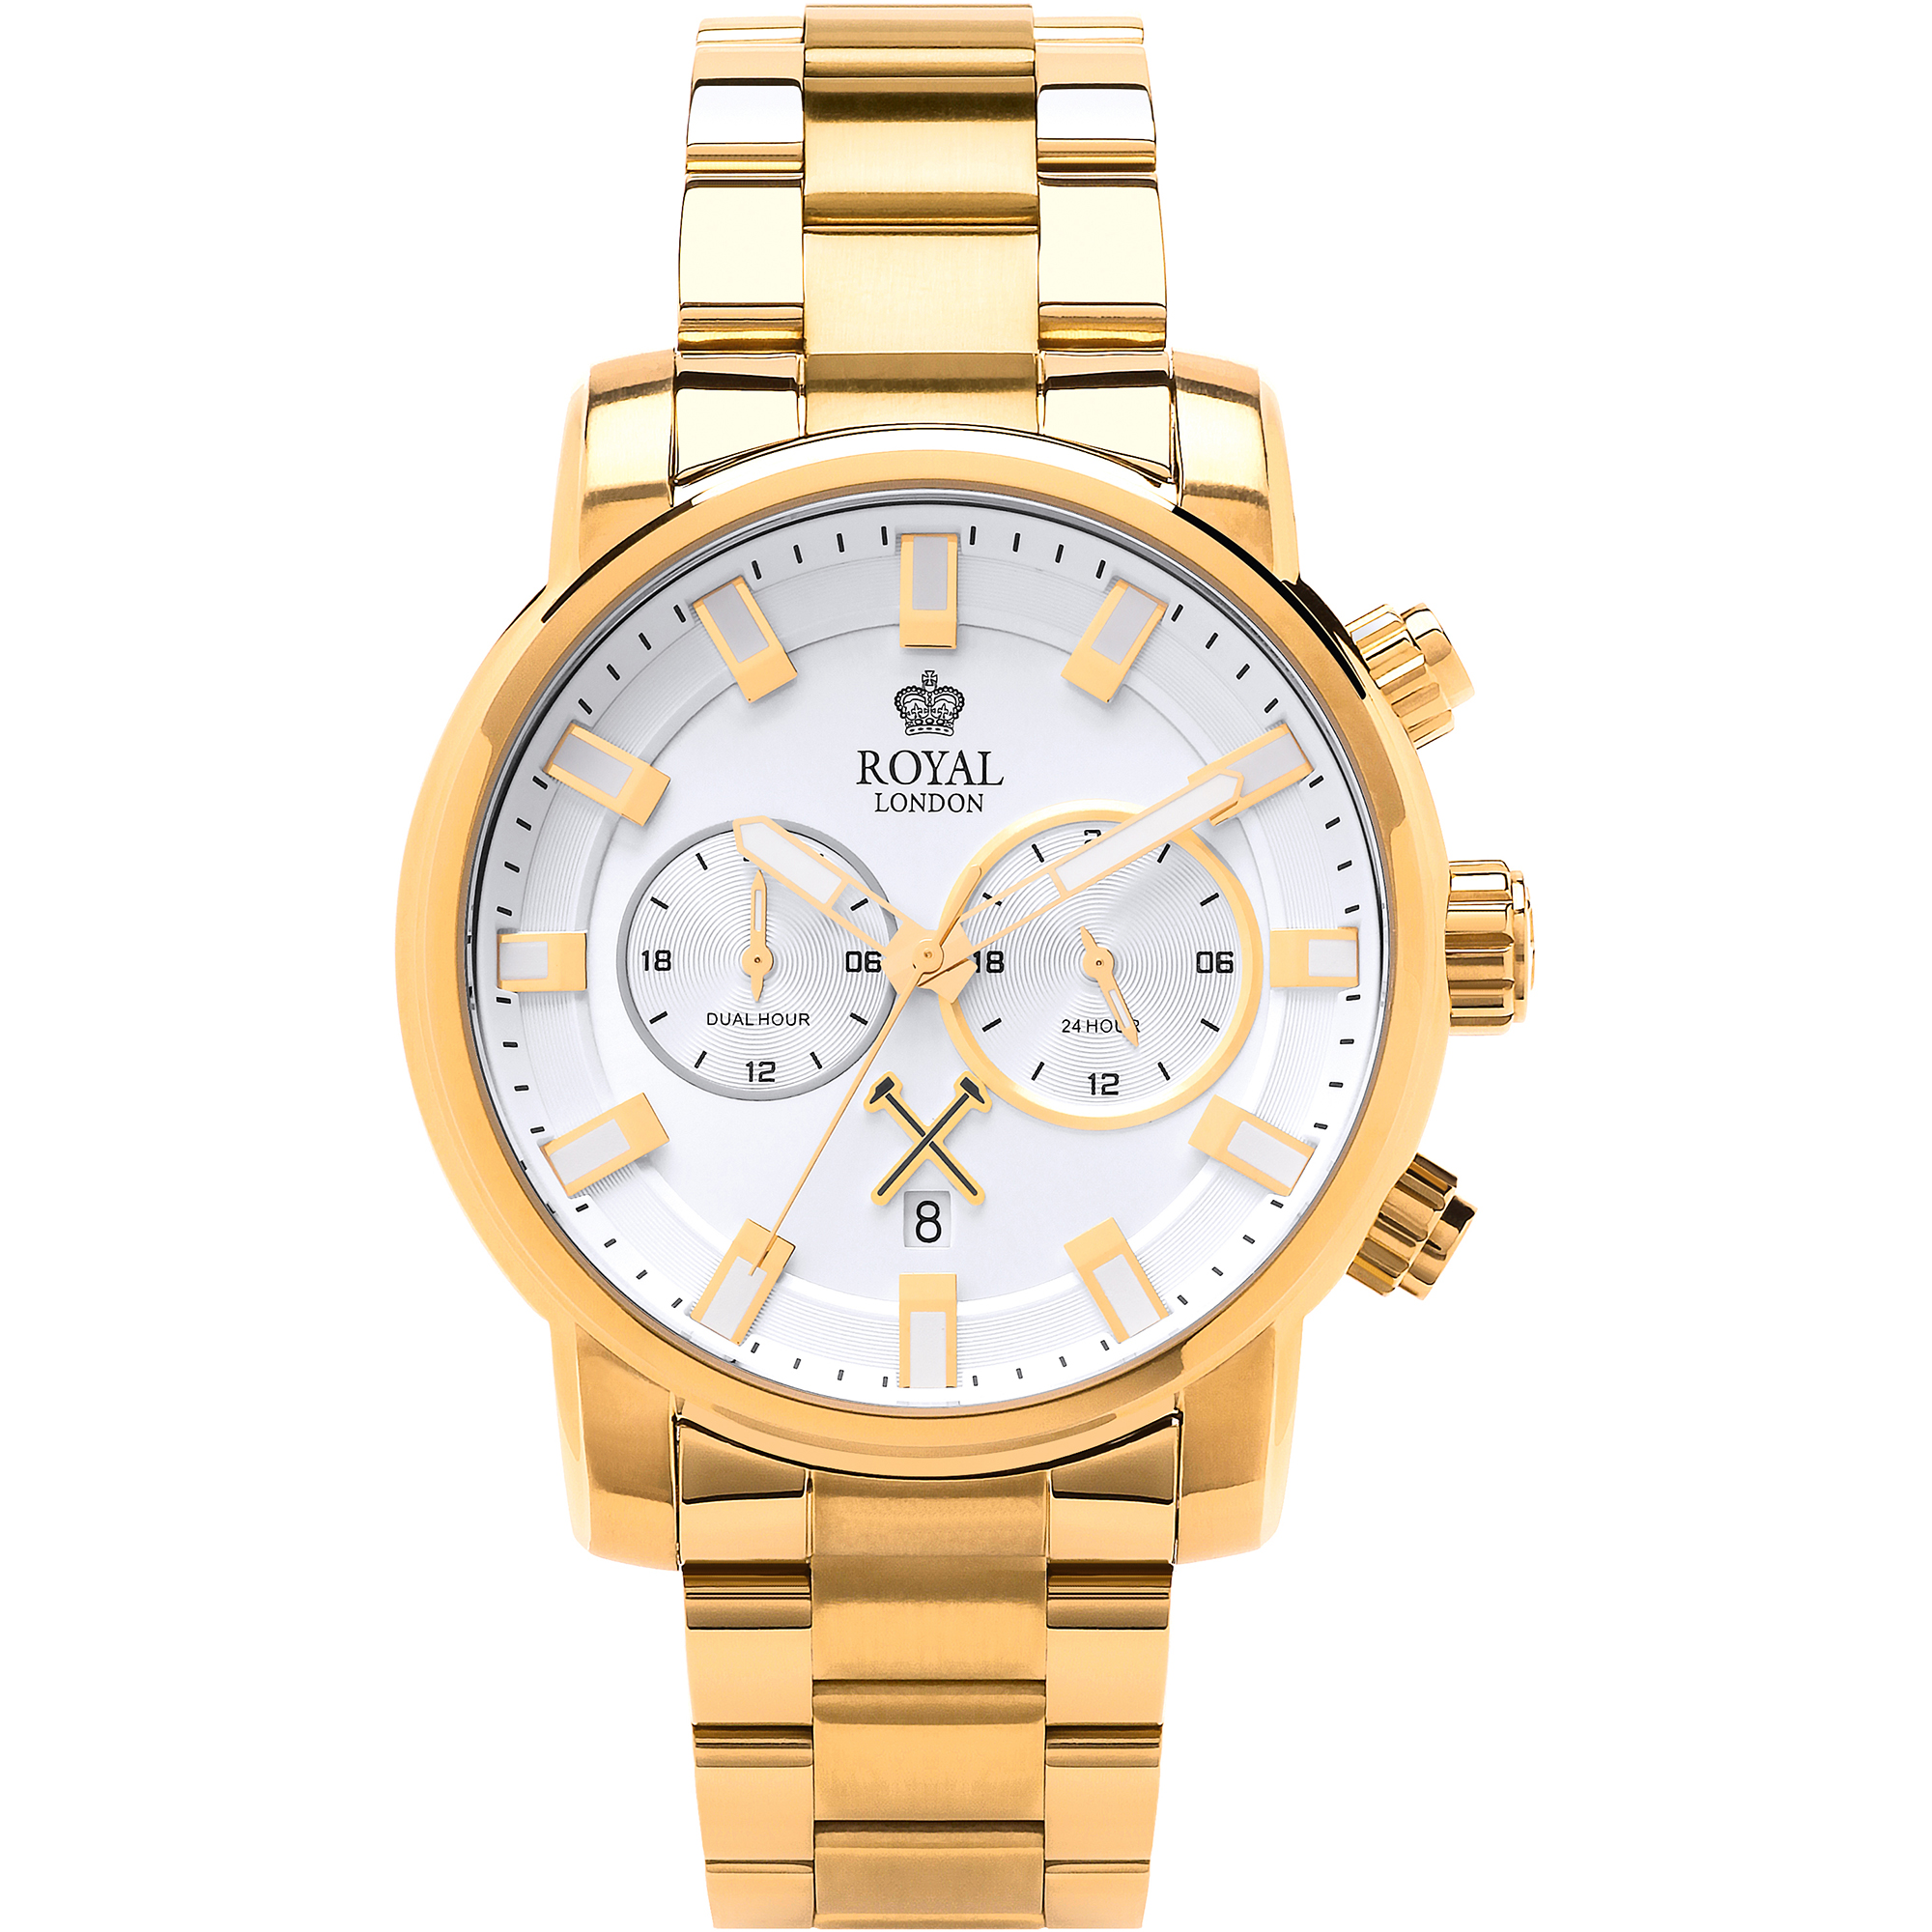 ROYAL LONDON 10 SS GOLD PLATED WATCH